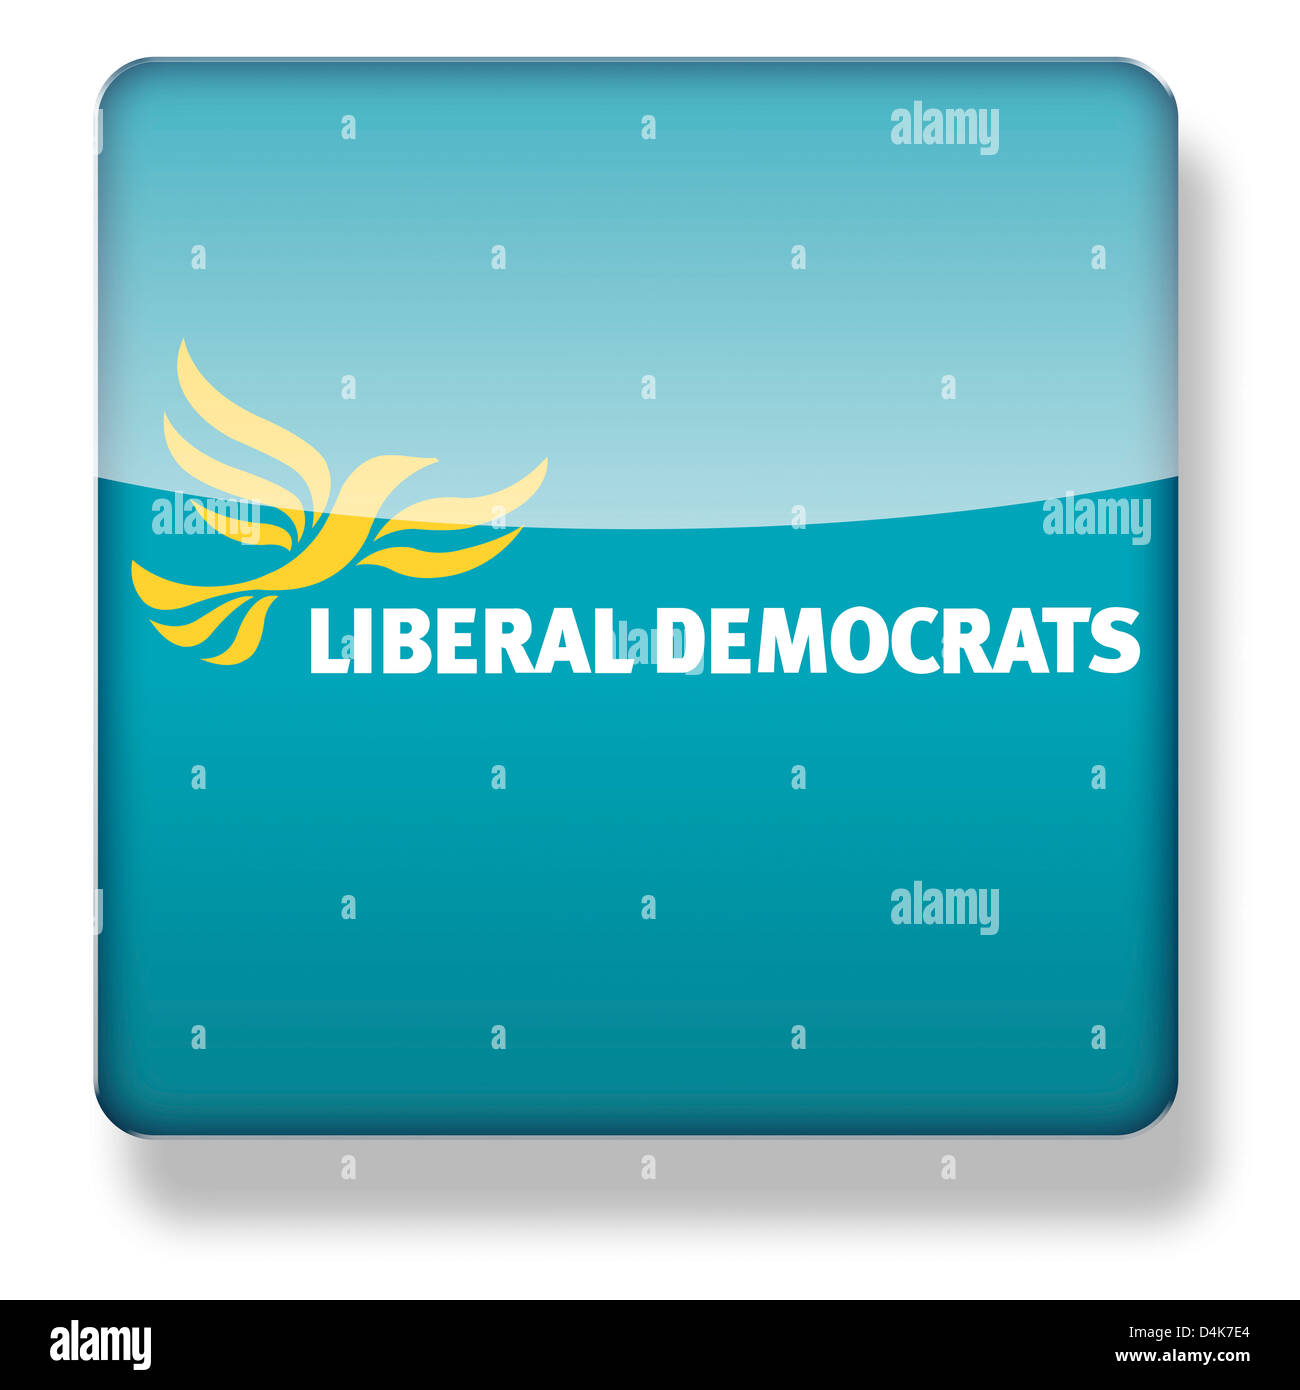 Liberal Democrats Party logo as an app icon. Clipping path included. - Stock Image